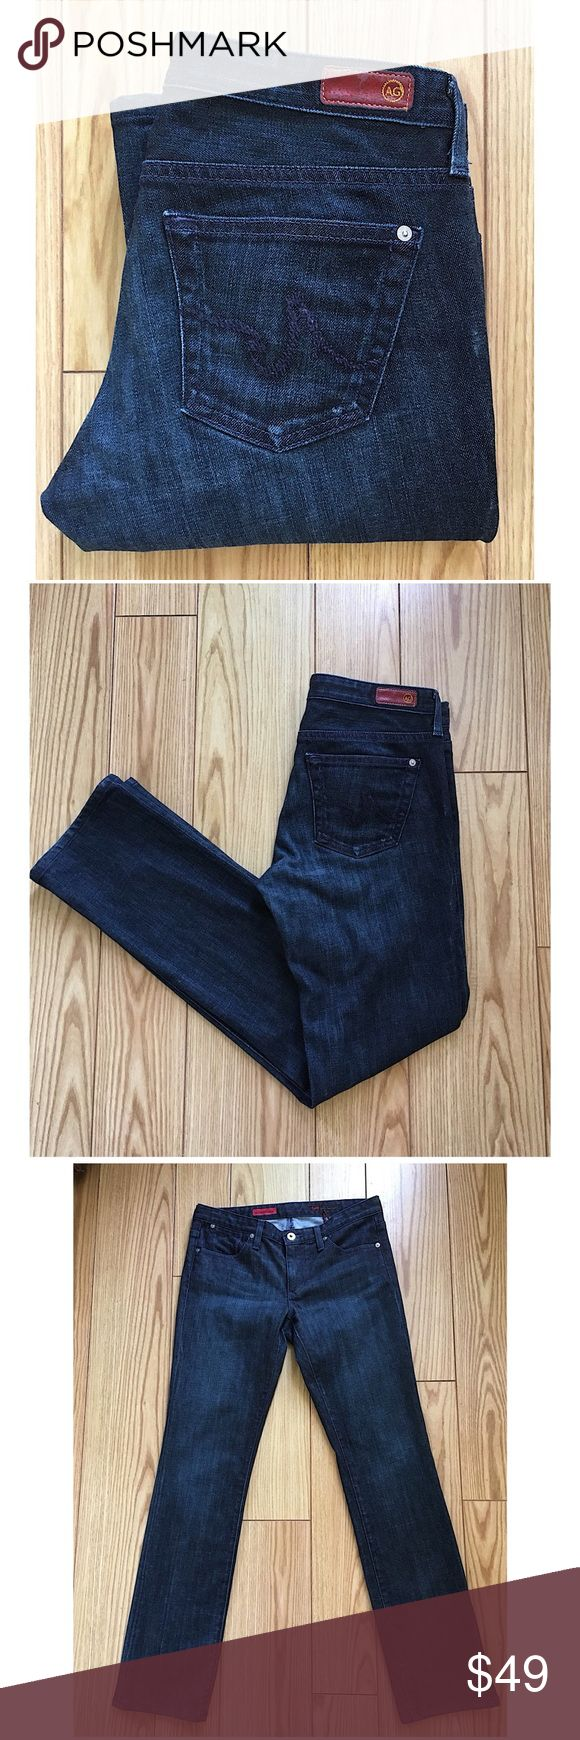 """AG ADRIANO GOLDSCHMIED """"CASABLANCA"""" JEANS Dark wash AG CASABLANCA Jeans.  Great condition.  5 pocket styling with zip/button closure. 98% Cotton 2% Polyurethane.  ALL MEASUREMENTS ARE APPROXIMATE AND TAKEN LAYING FLAT: Waist 15.5"""", Rise 7.5"""", Inseam 31.5"""", Leg Opening 7.25"""" Ag Adriano Goldschmied Jeans Straight Leg"""